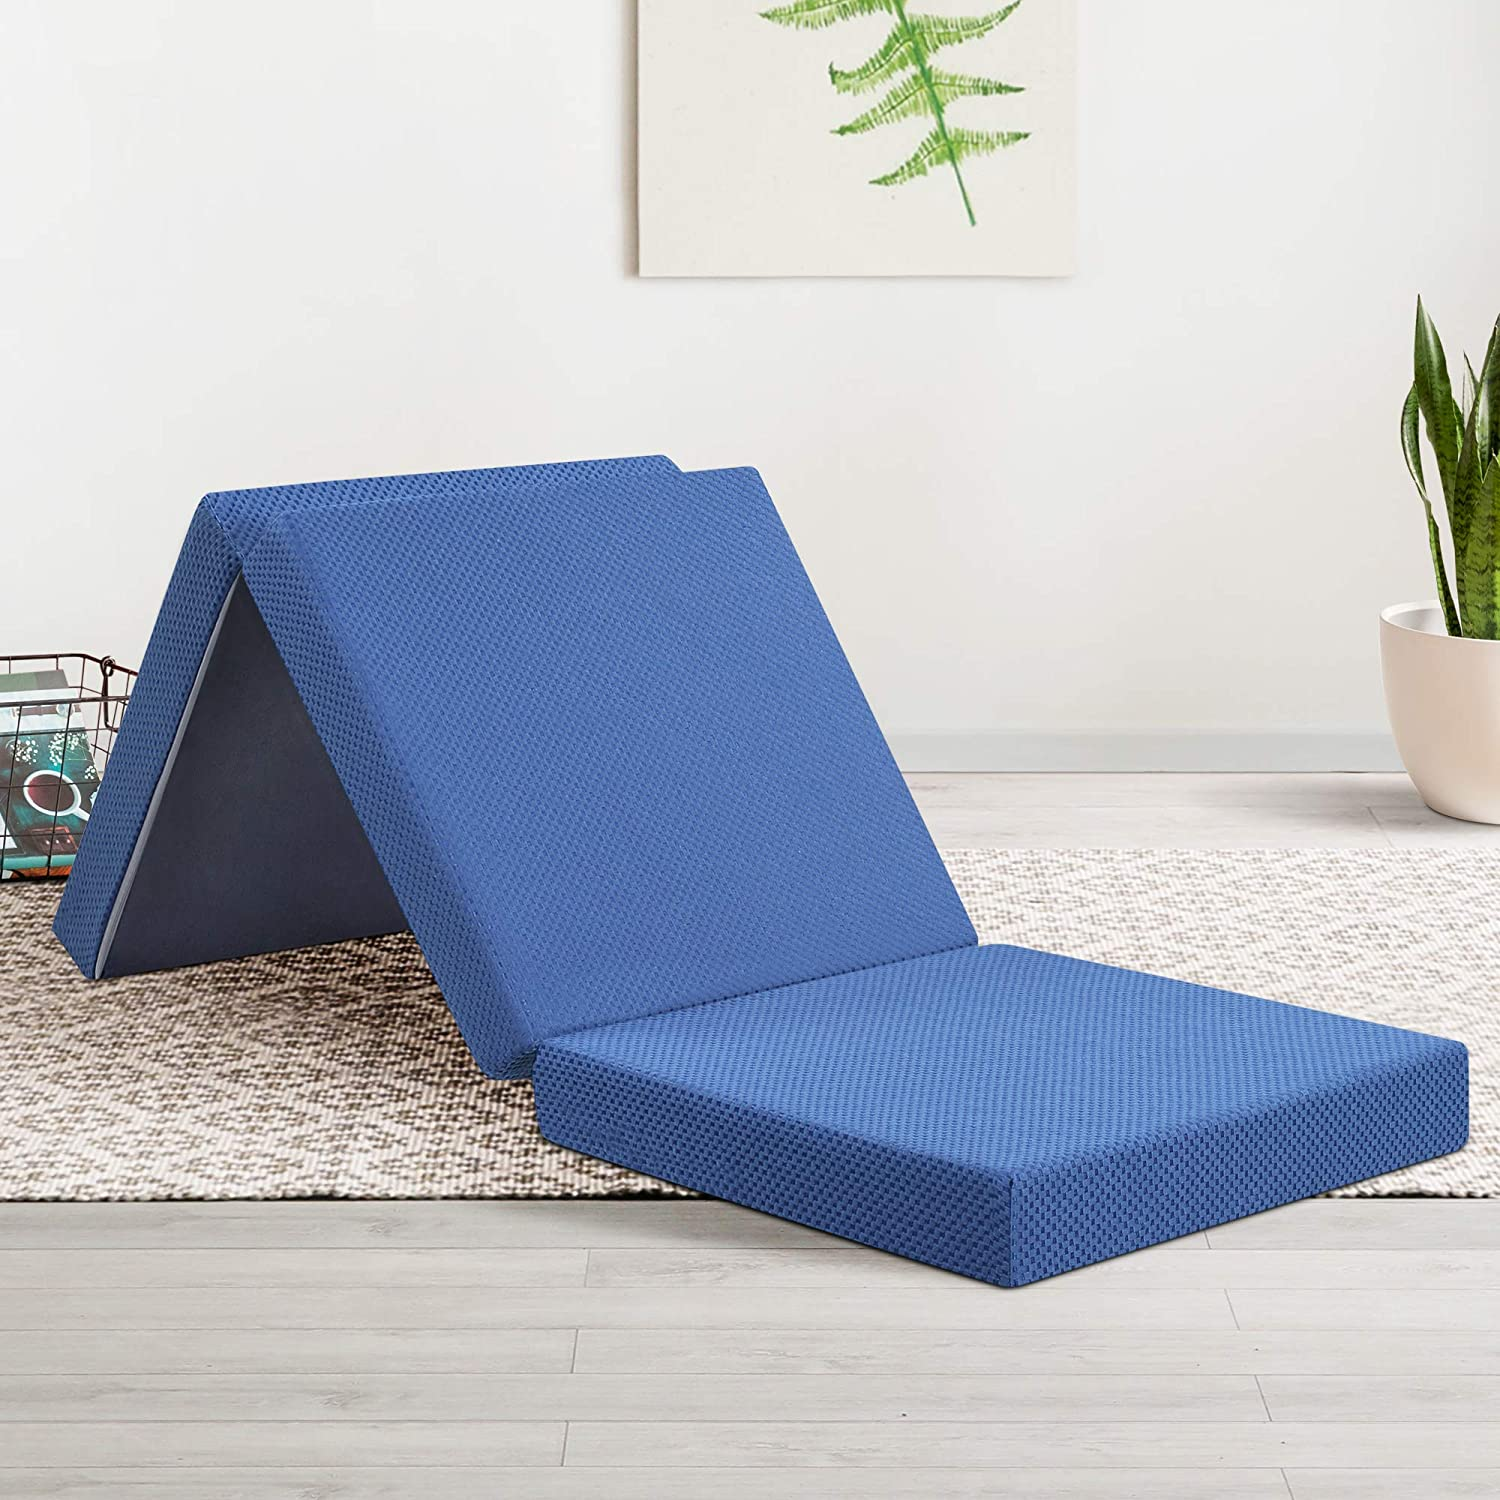 10 Best Floor Mattresses 2020 [Reviews - Guide]